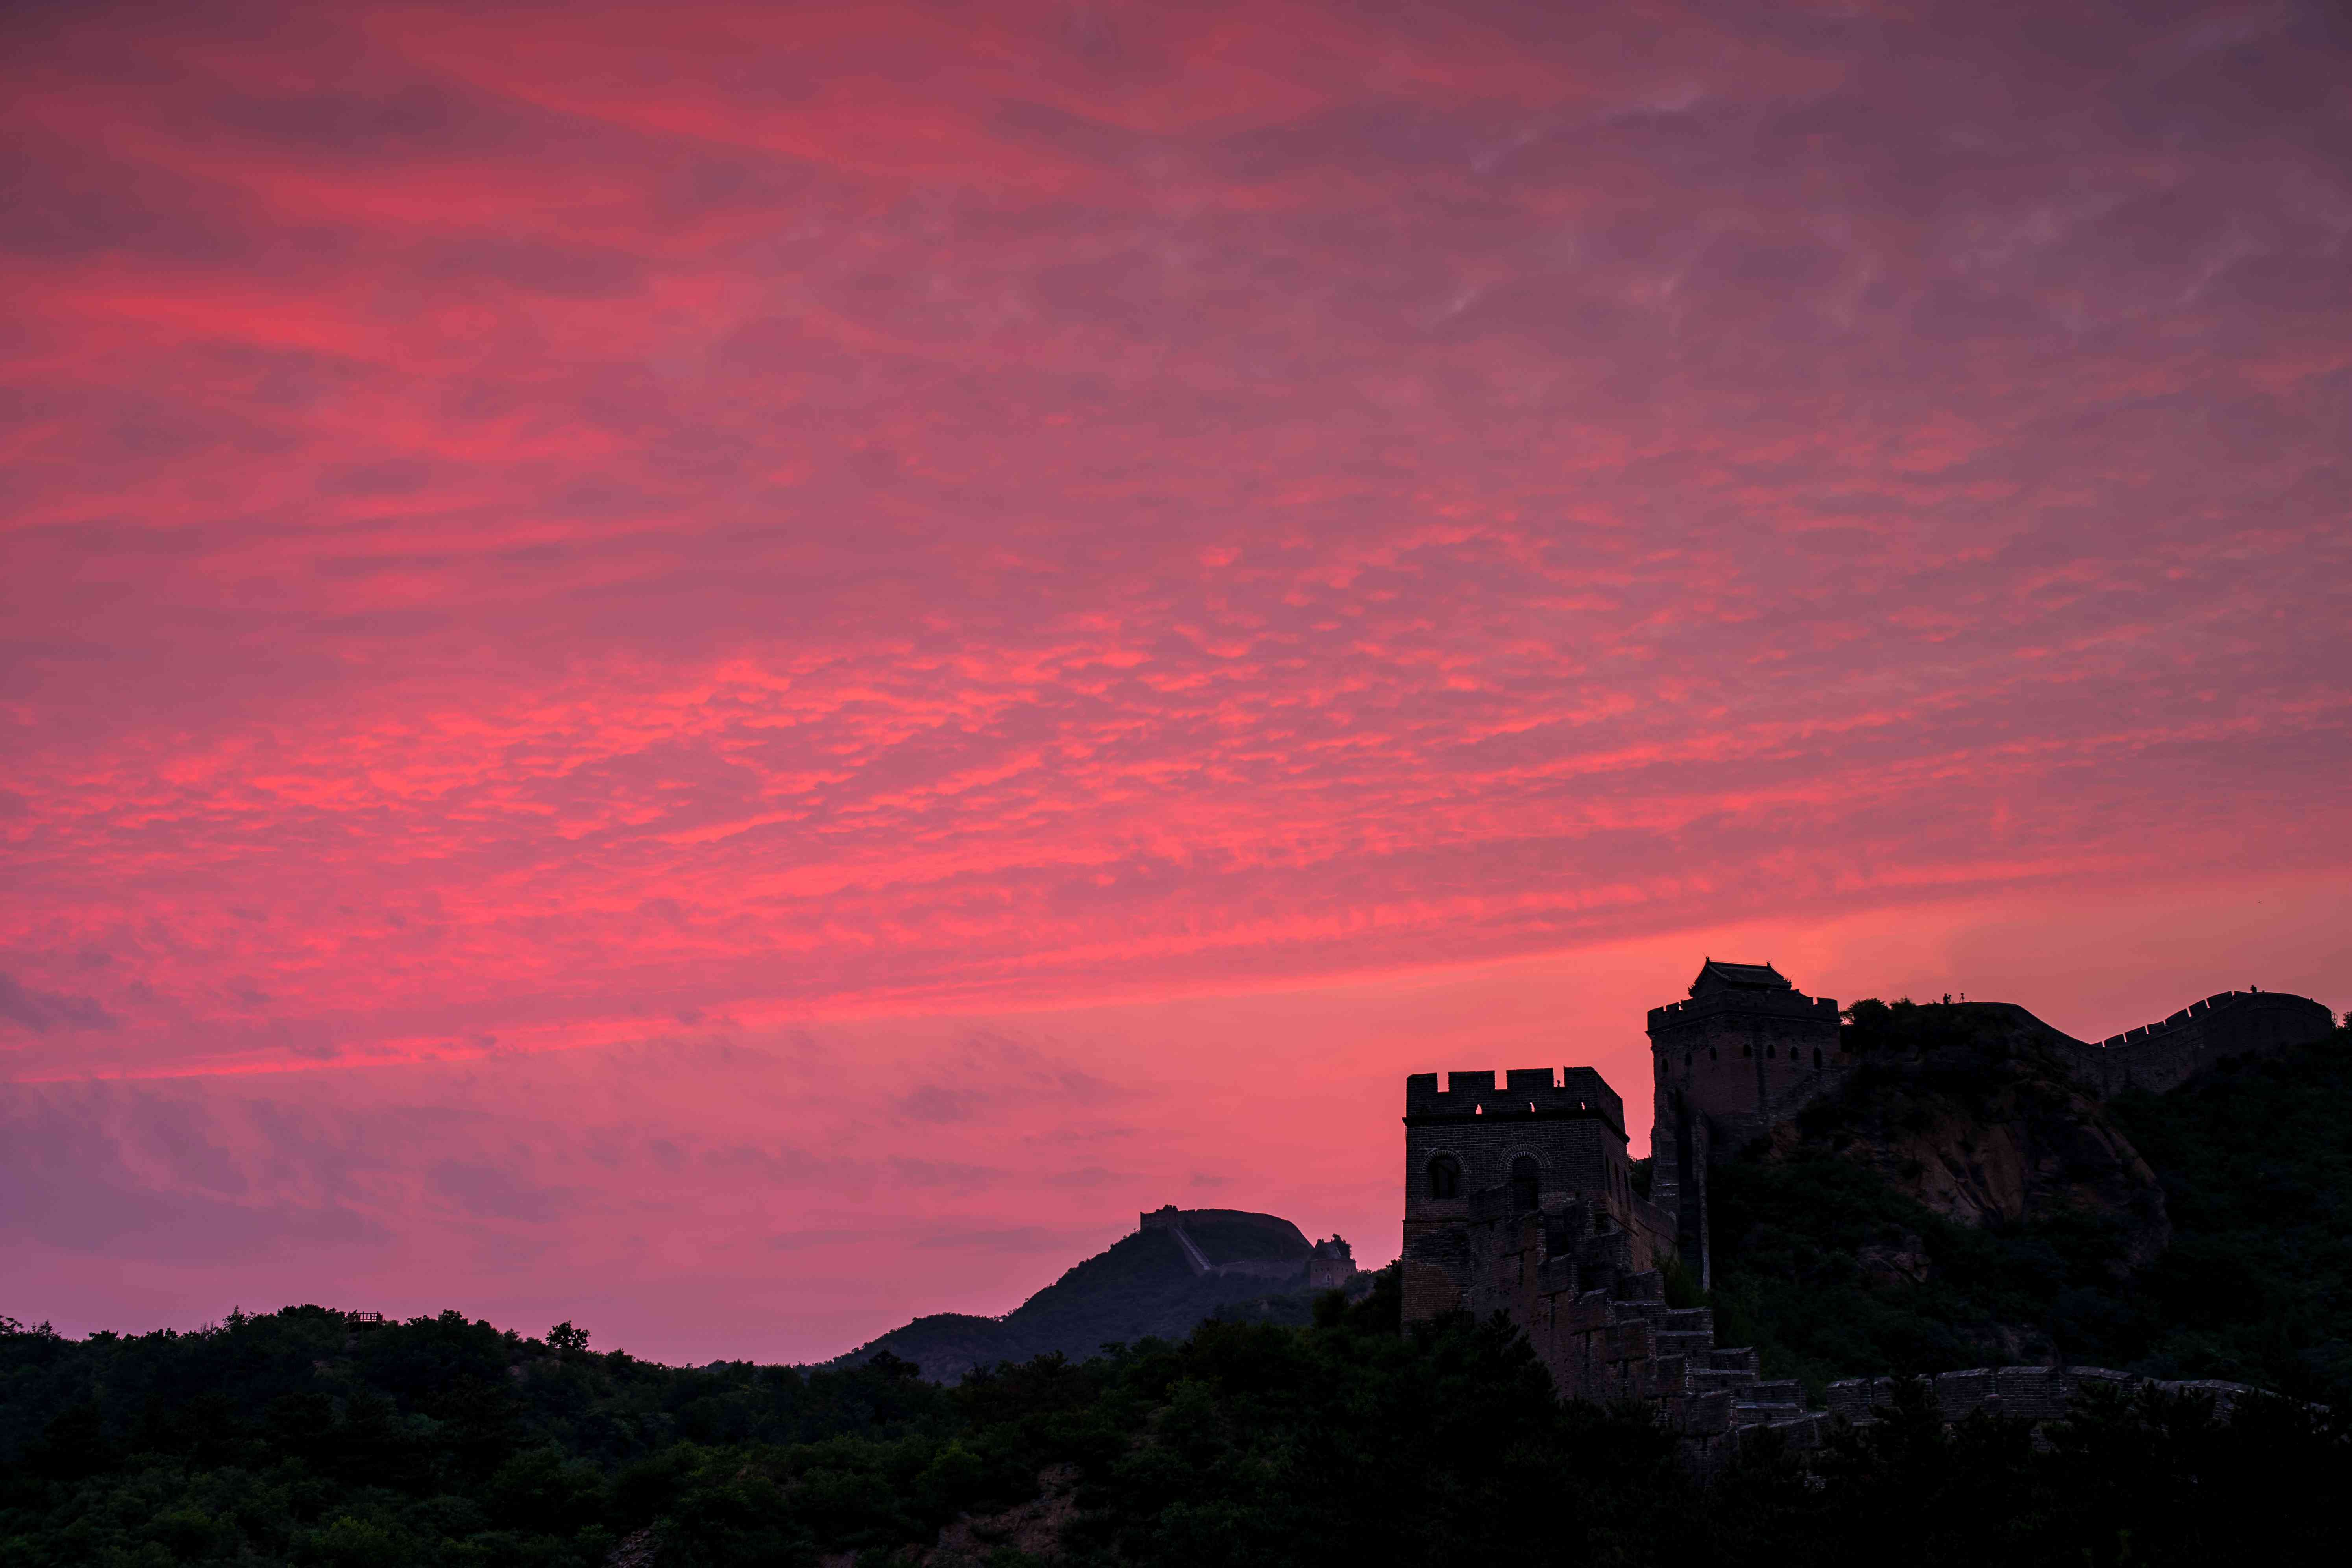 The Jinshanling Great Wall, built in 1368 and located in Chengde City, Hebei, is bathed in the light of a pink sunset